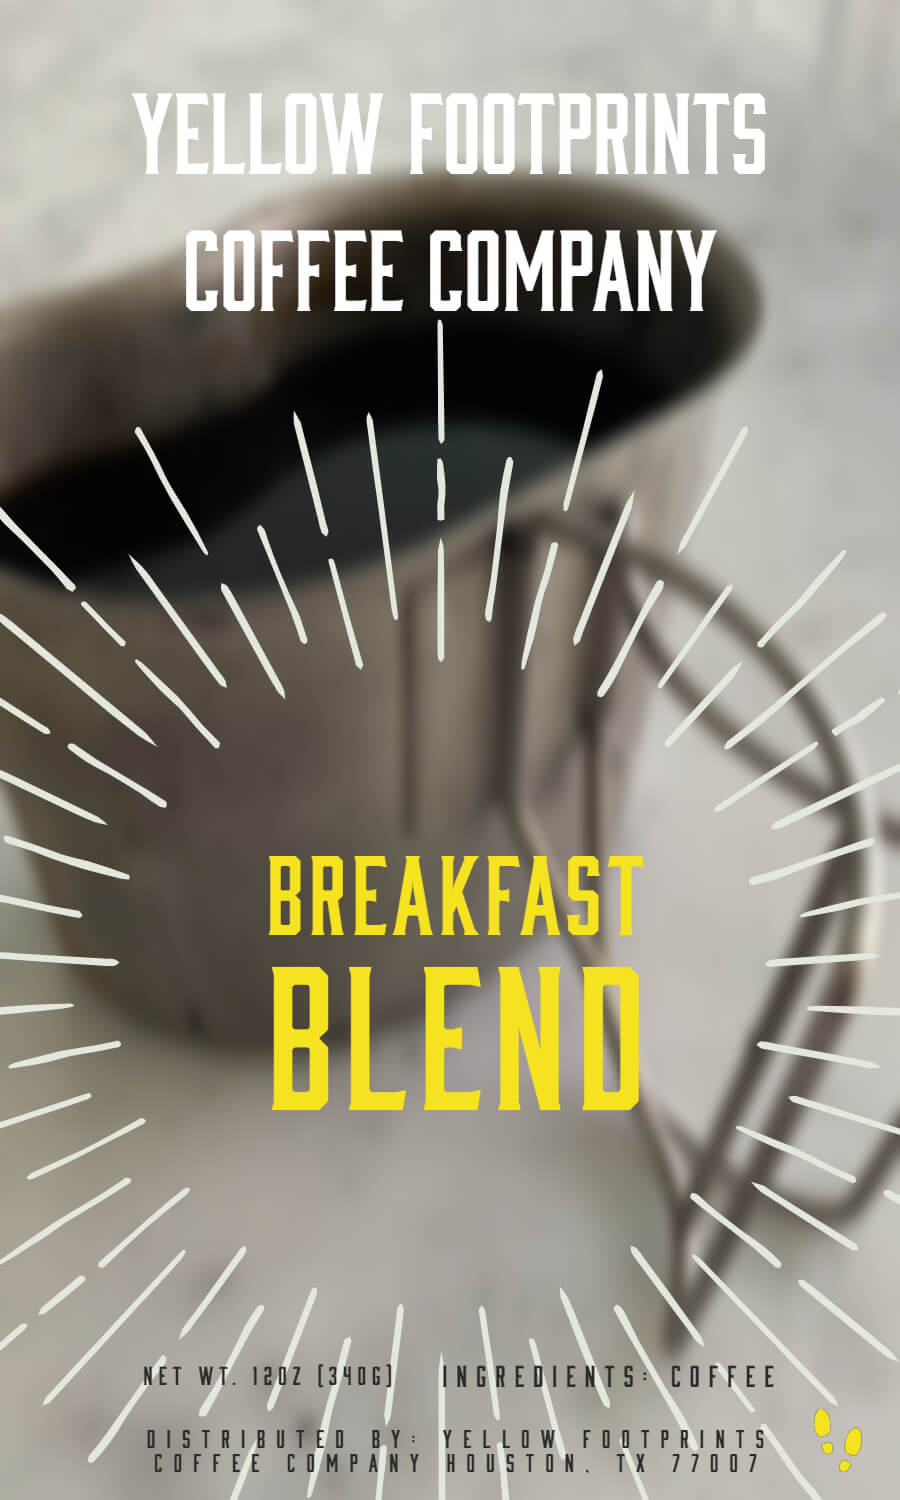 Breakfast Blend - Breakfast in Brazil from Yellow Footprints Coffee Company